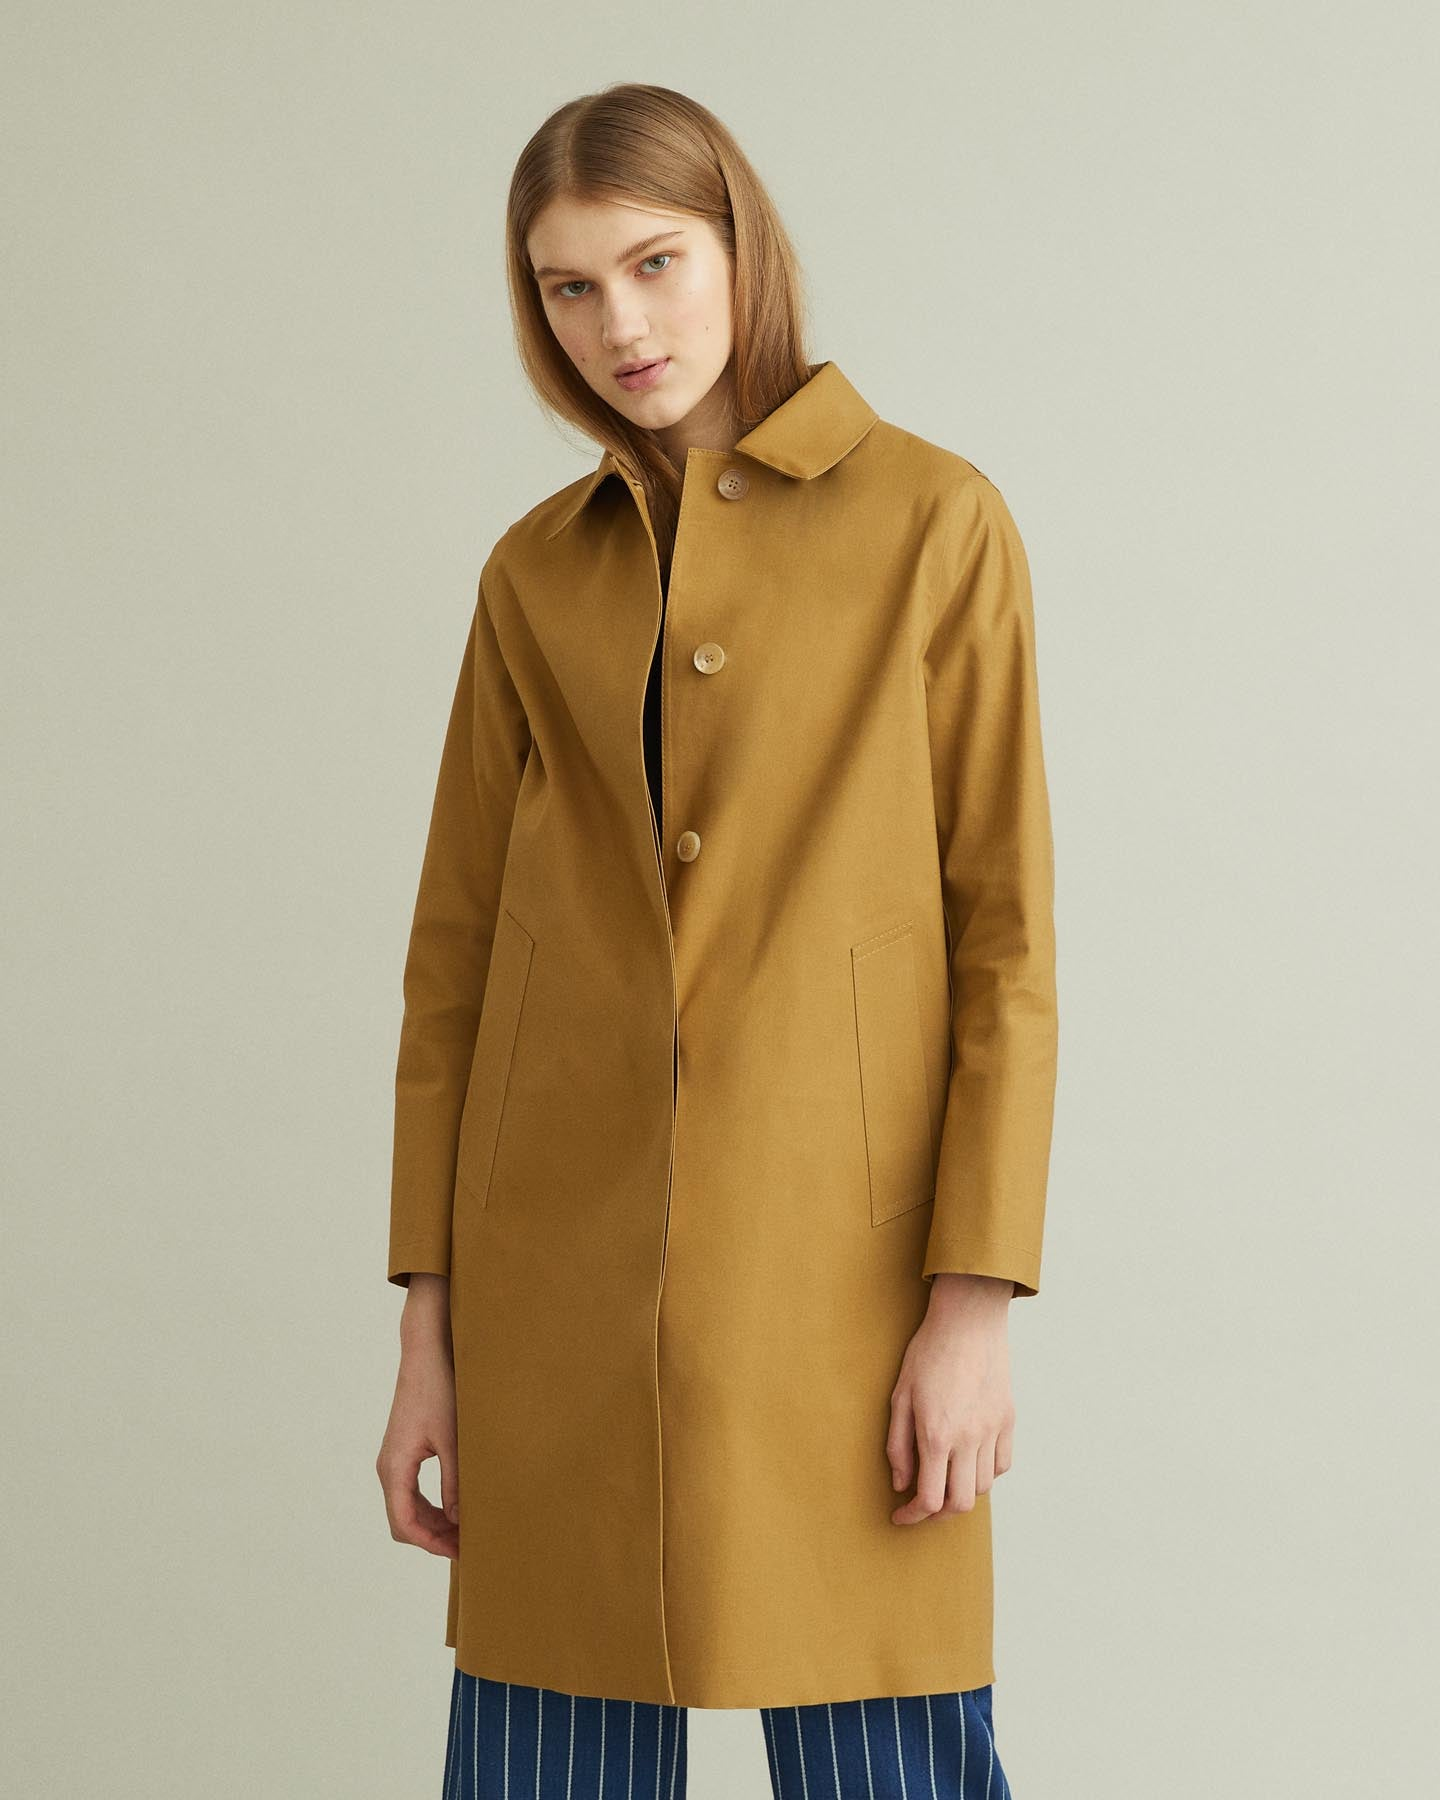 9f91f9297 Ladies Waterproof Bonded Cotton Coat – WANT Apothecary US